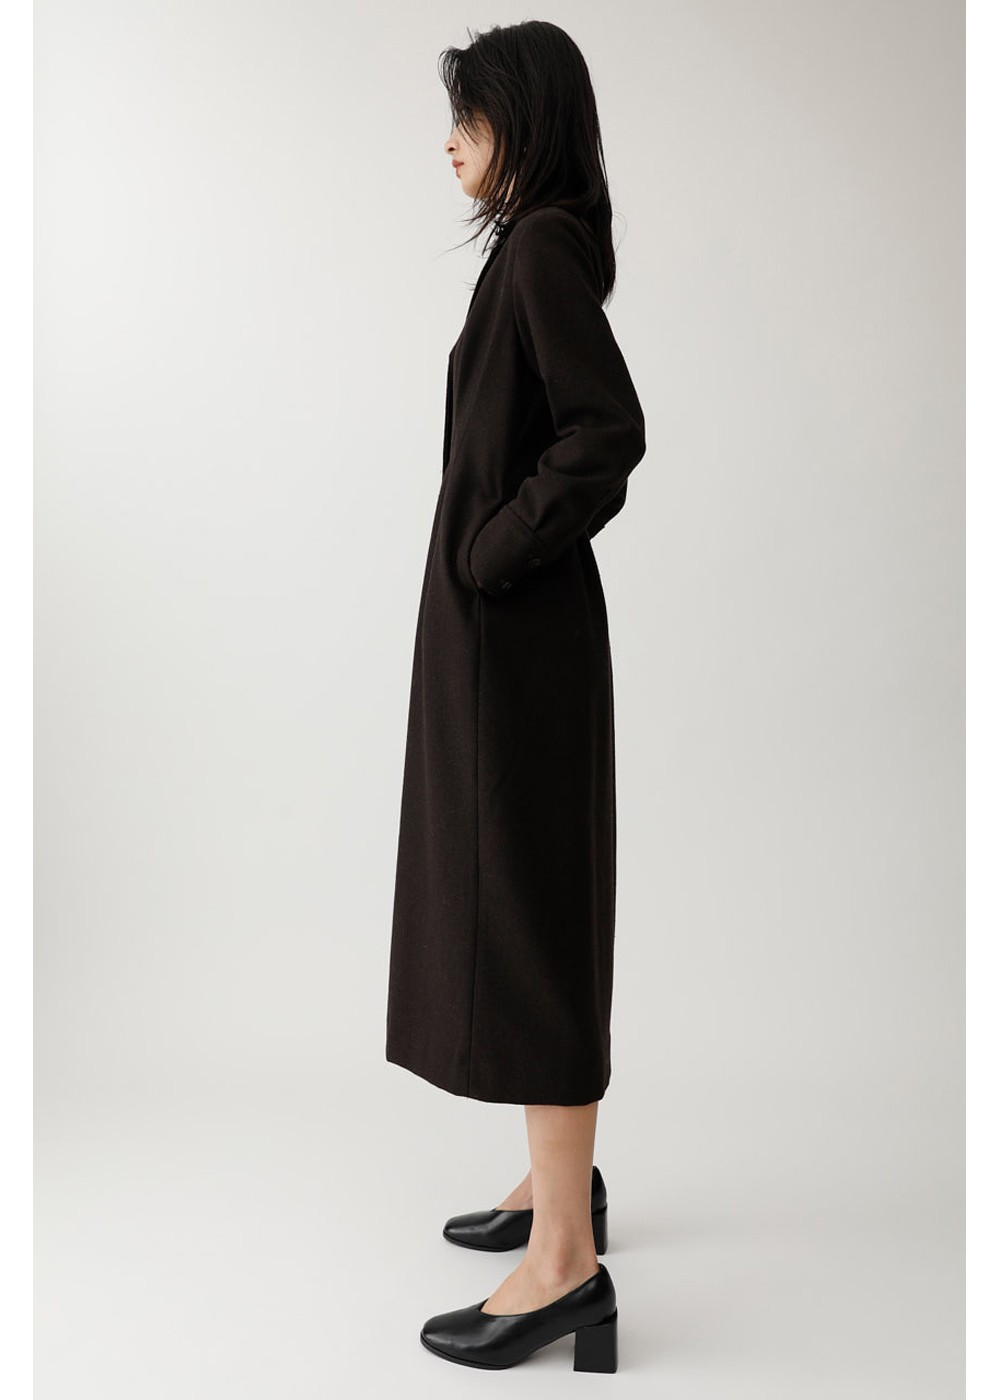 【最大60%OFF】TUCK WAIST LONG DRESS|D/BRN|マキシワンピース|MOUSSY